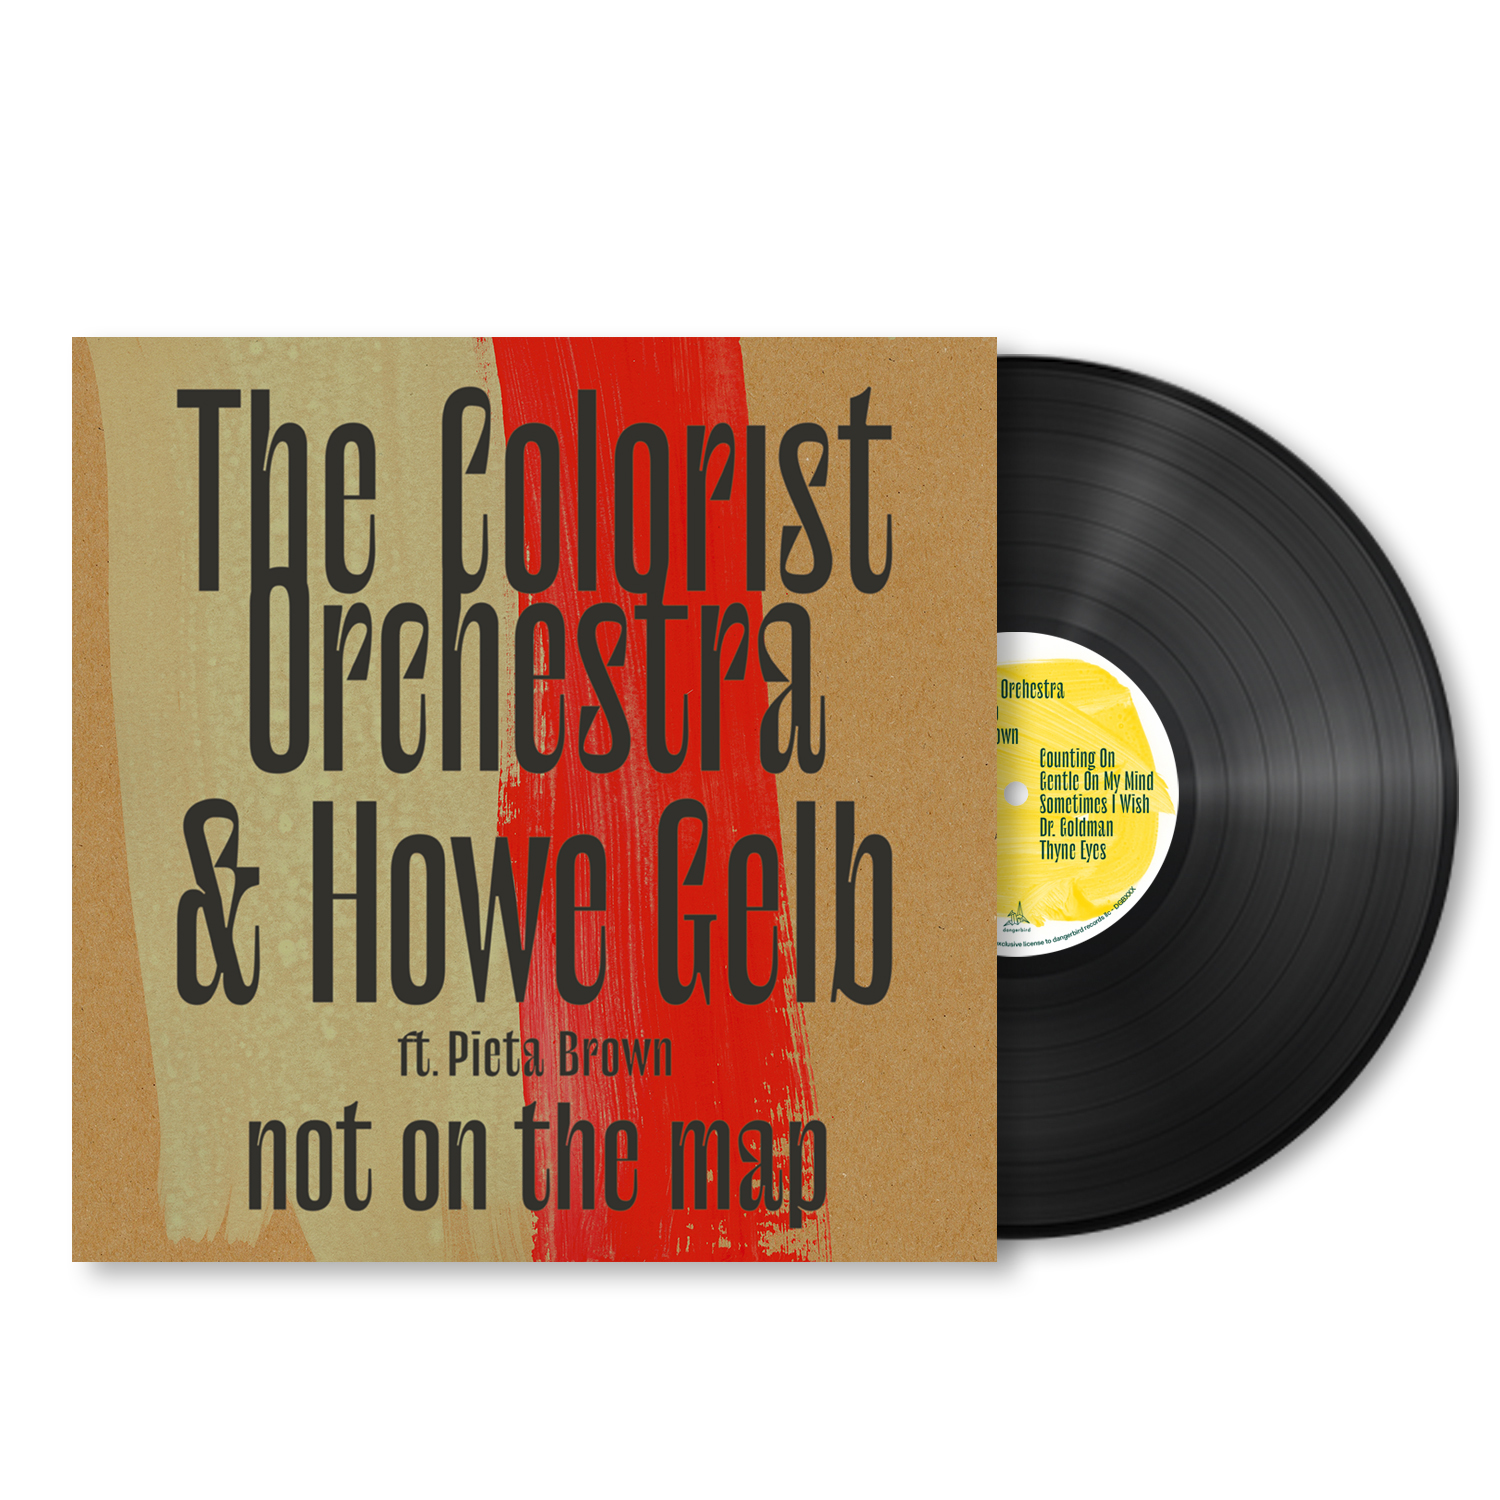 The Colorist Orchestra & Howe Gelb - Not On The Map - LP Bundle